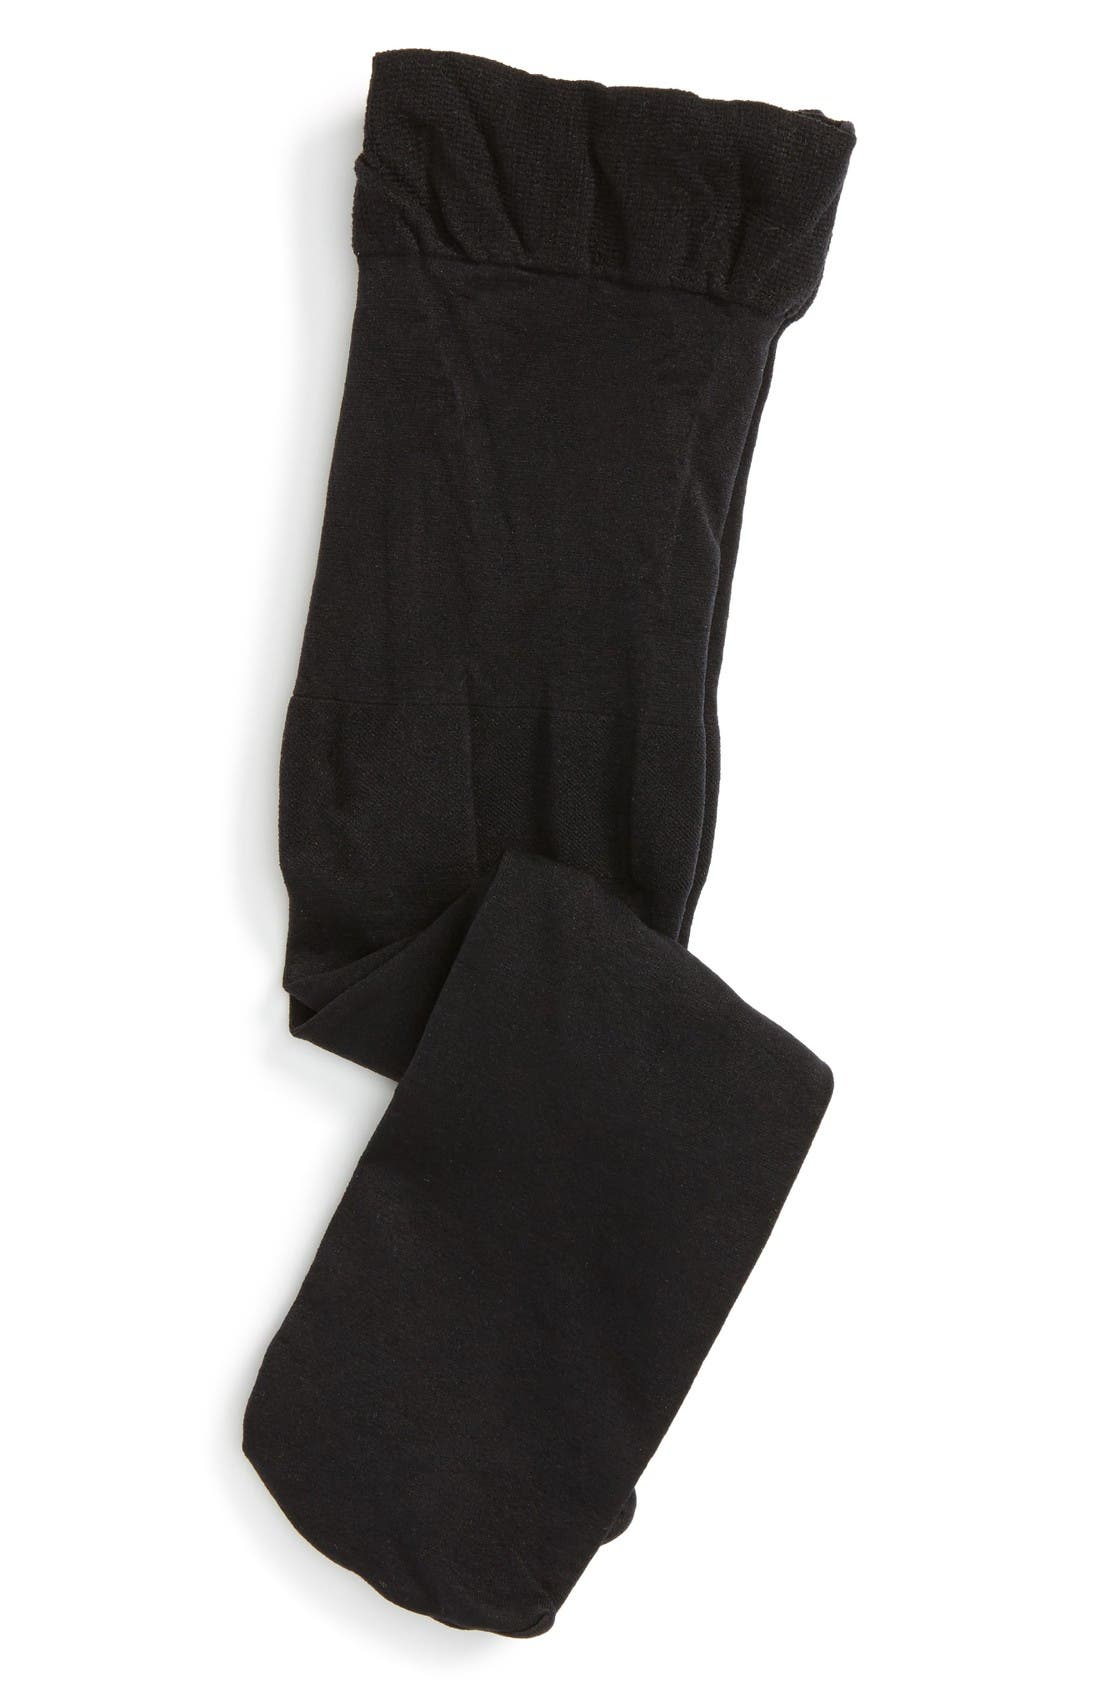 Nordstrom 'So Fine' Microfiber Tights (Baby Girls) (2 for $15)